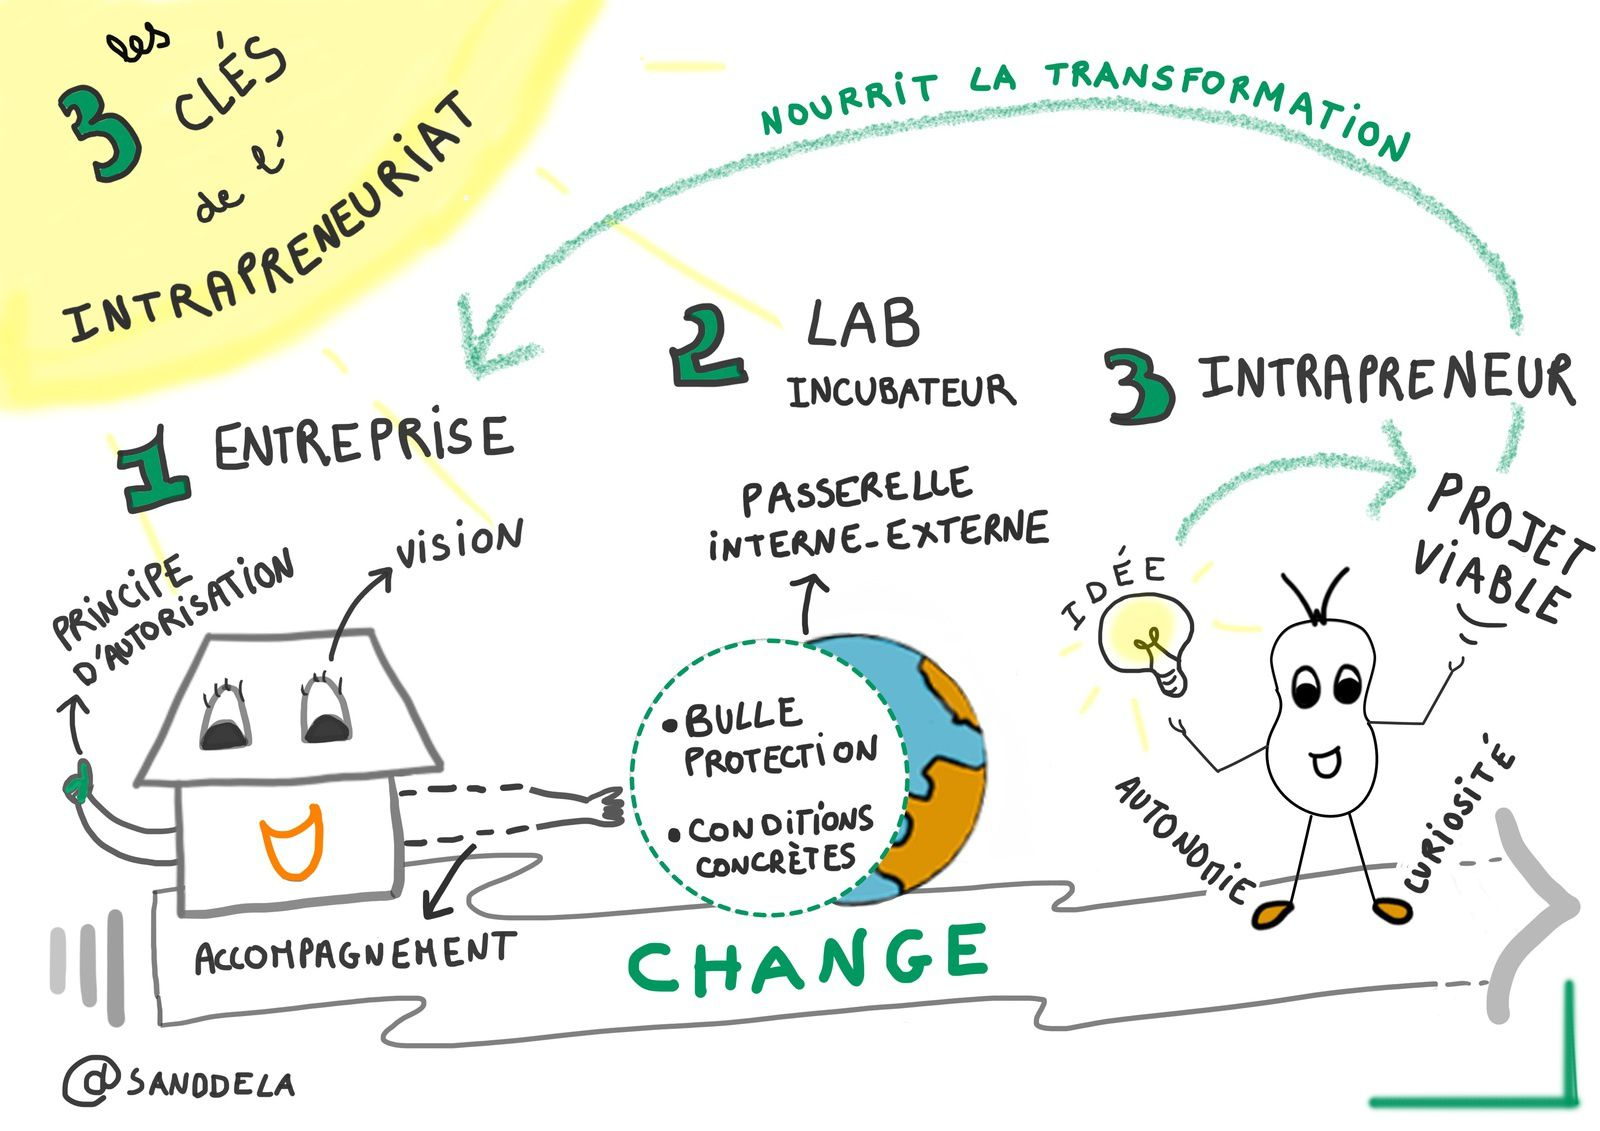 Intrapreneuriat Intrapreneur Sketchnote - Mère et Fille 2.0 - Sandrine Delage - People'sLab4Good - BNP Paribas - #Intrapreneurs4Good - intrapreneur for good